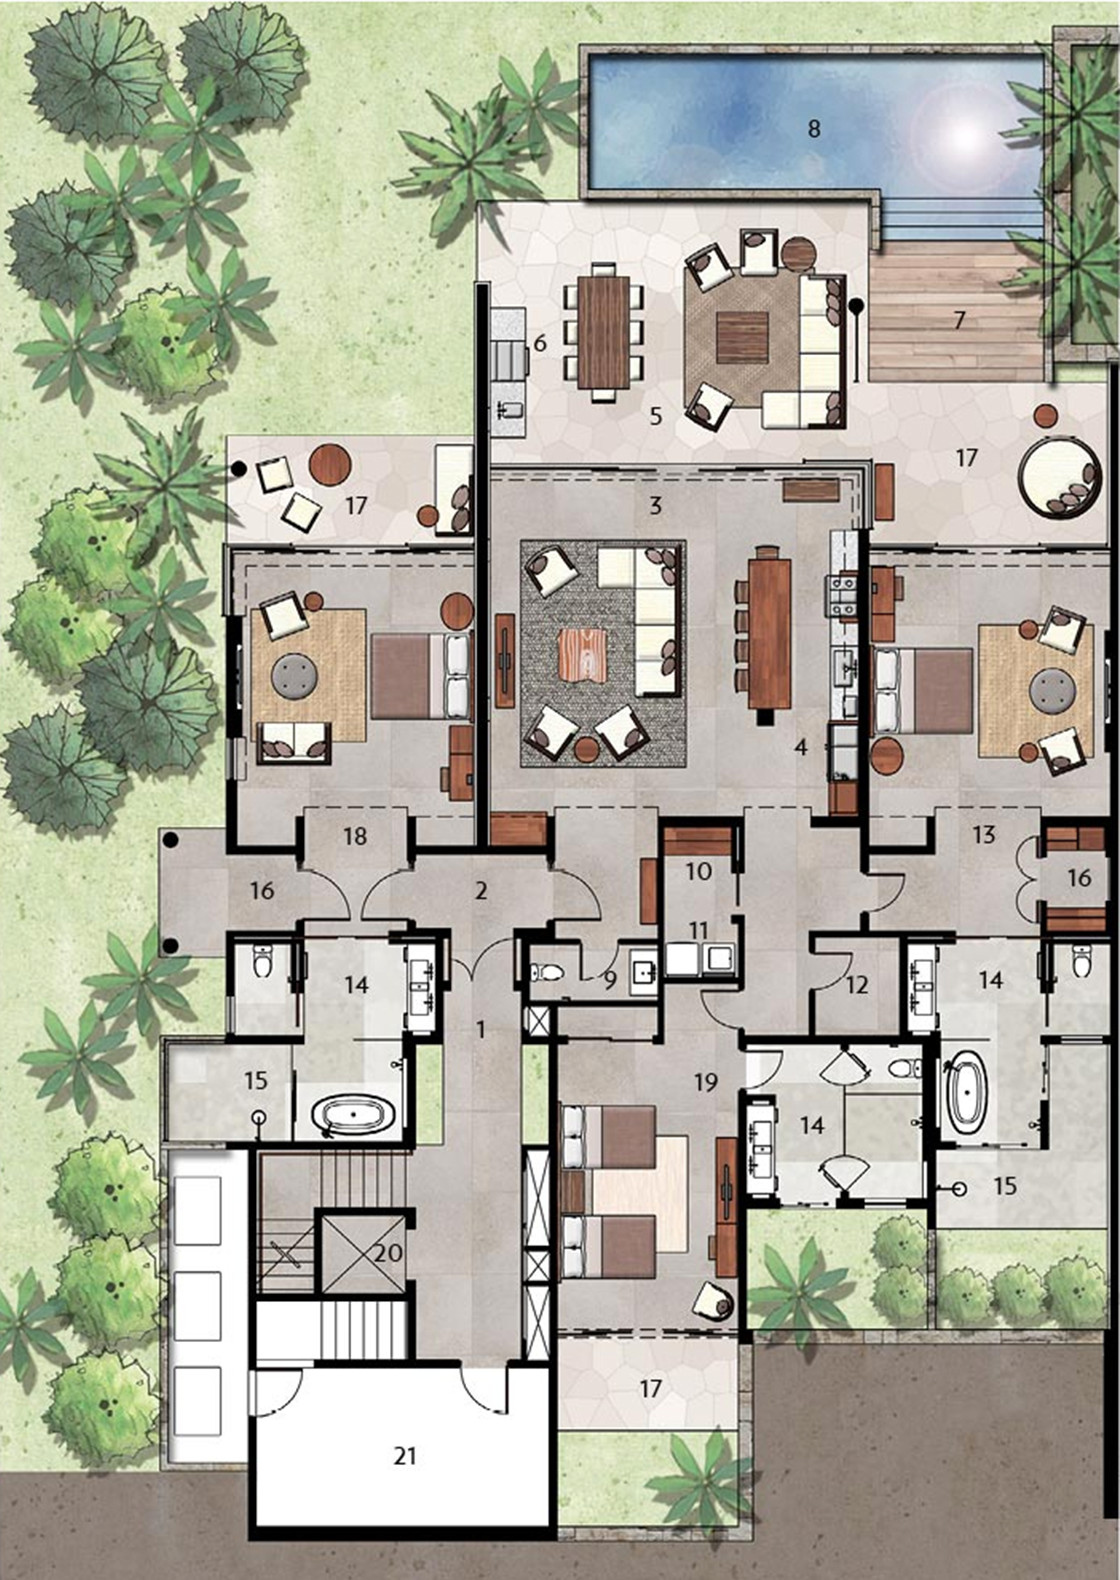 Master Bedroom Floorplans Los Cabos Luxury Villas Floor Plans Chileno Bay Resort